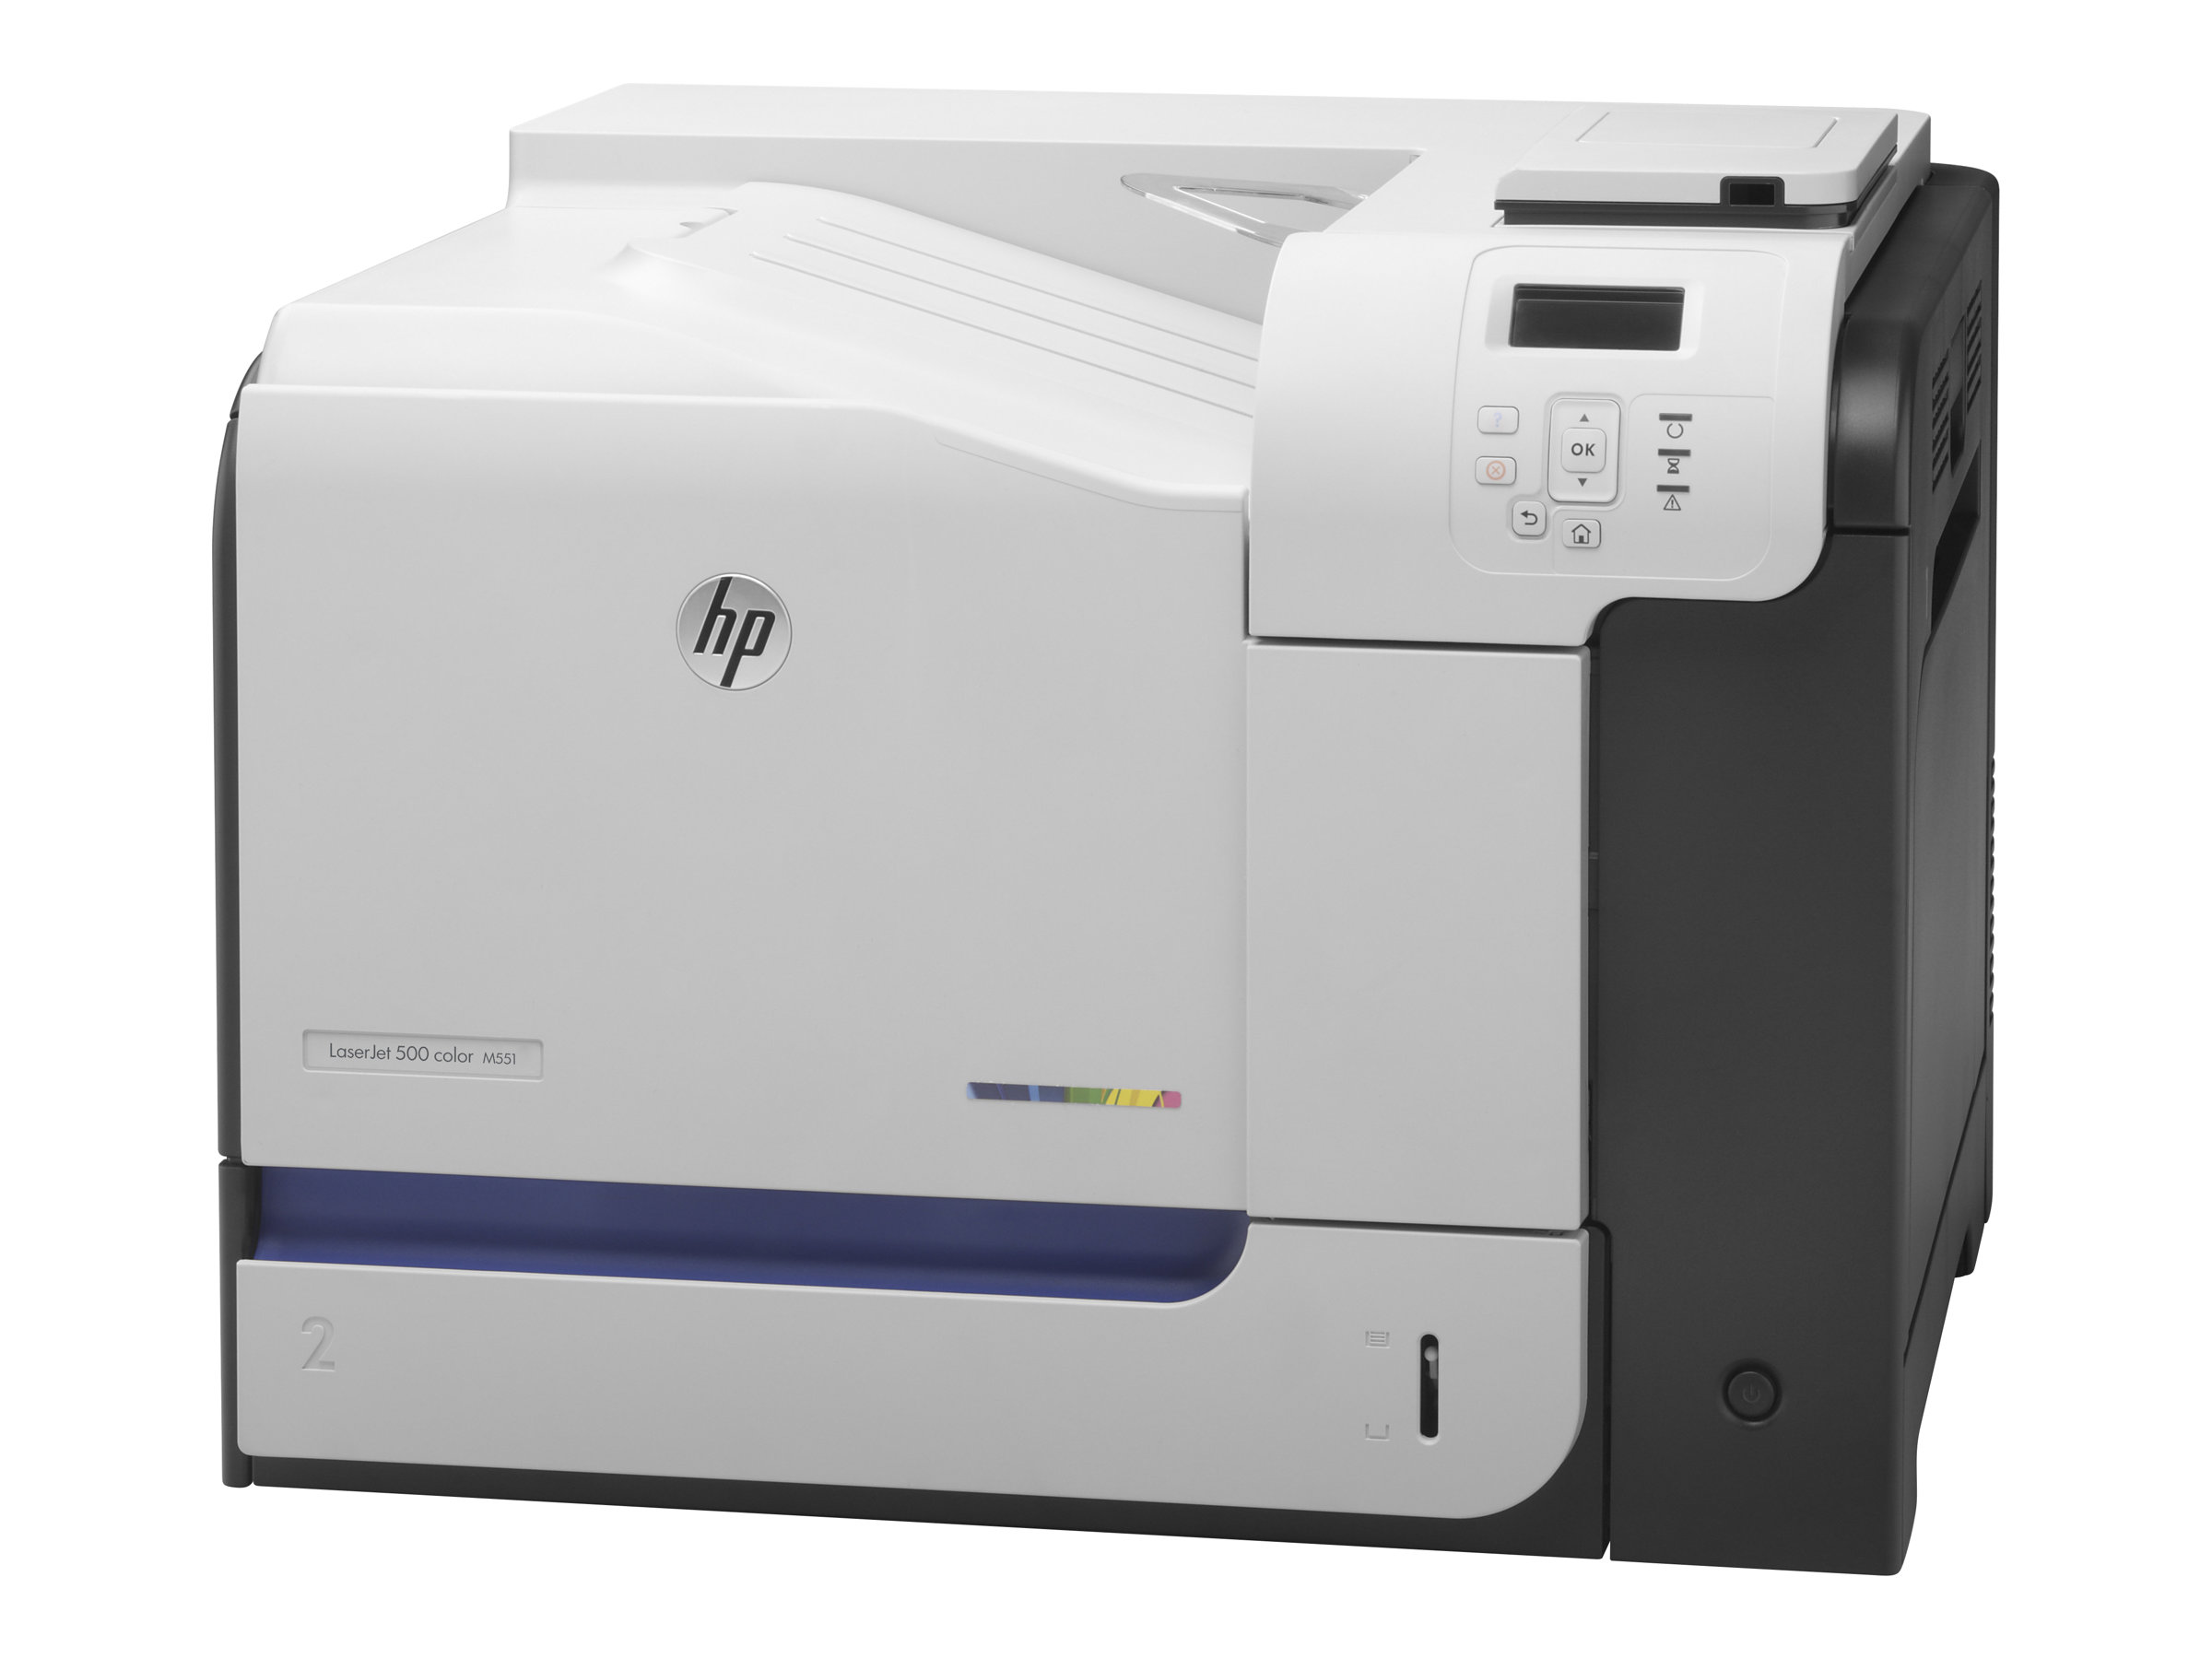 Cartouches laser compatibles avec l'imprimante HP LASERJET ENTERPRISE 500 COLOR M 551 DN